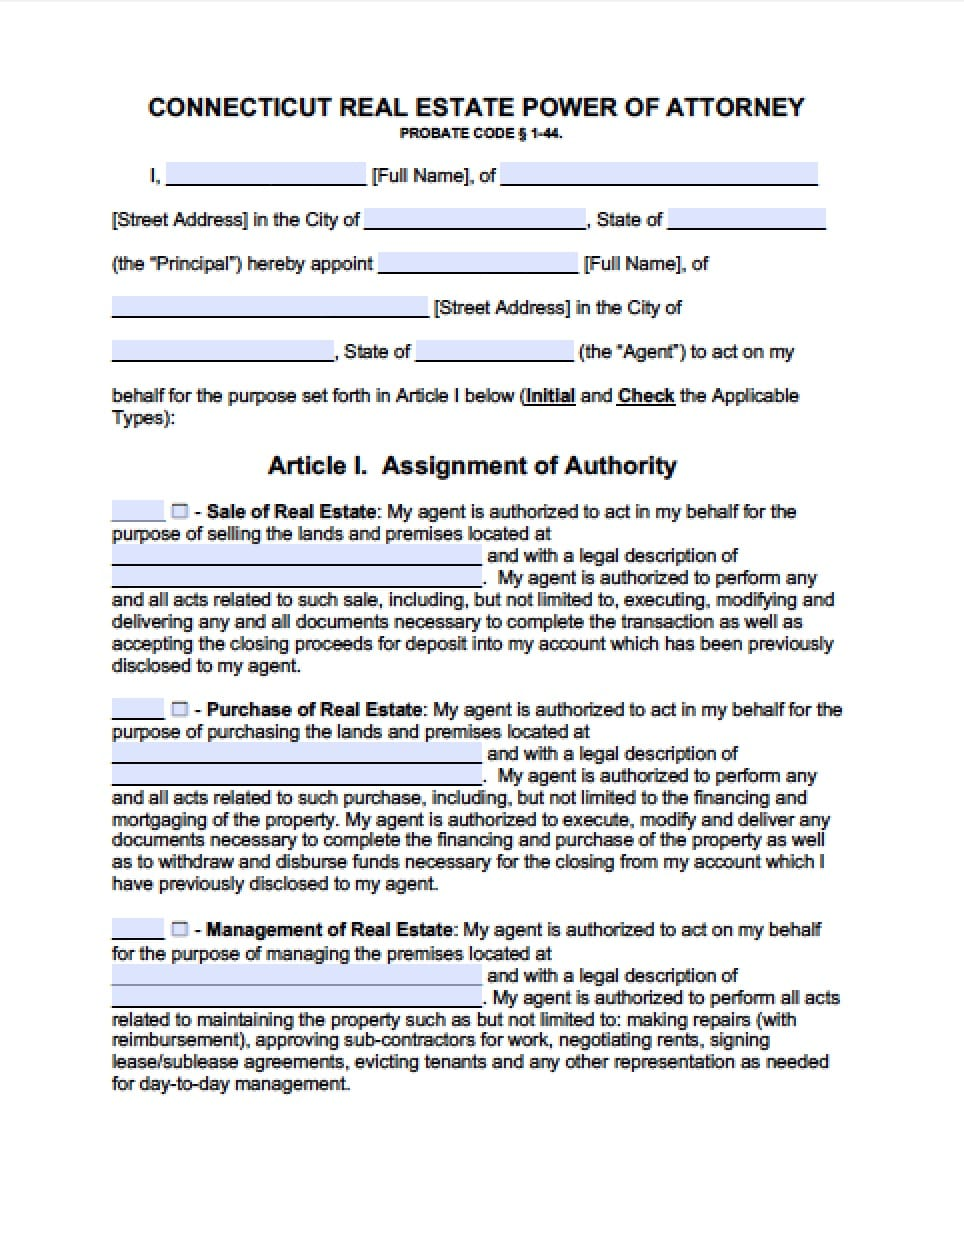 power of attorney form 1040  Connecticut Tax Power of Attorney Form - Power of Attorney ...